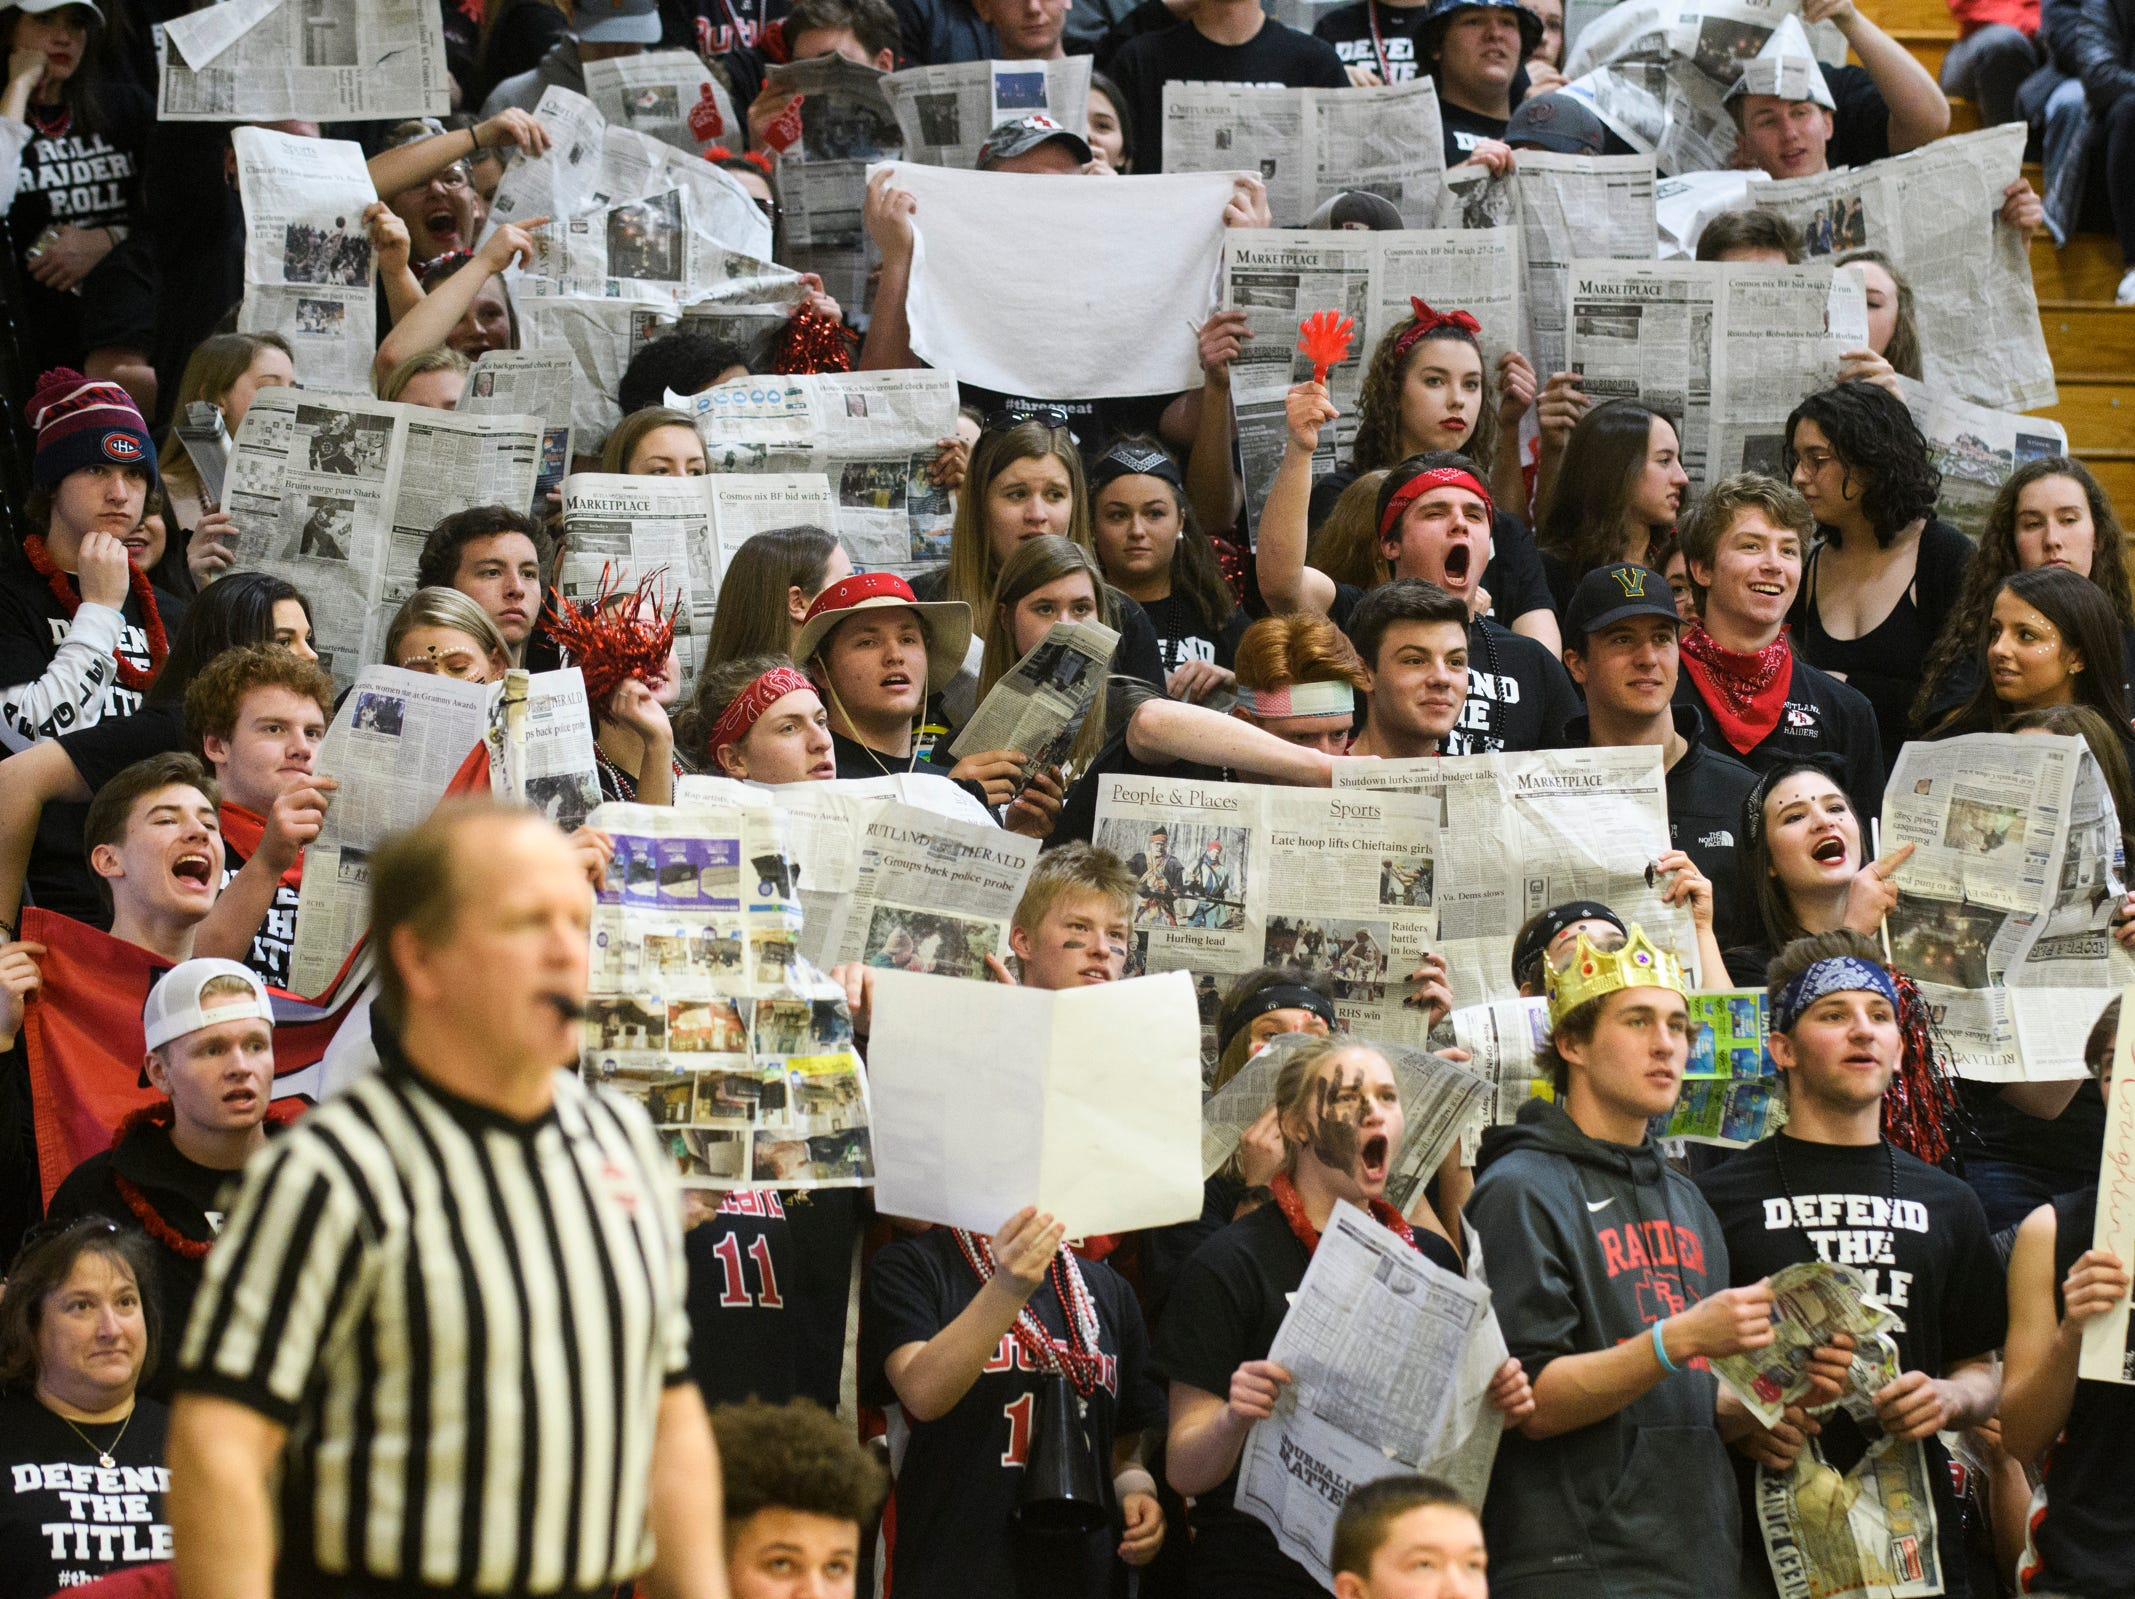 Rutland fans hold p newspapers during the DI boys basketball championship game between the St. Johnsbury Hilltoppers and the Rutland Raiders at Patrick Gym on Sunday afternoon March 17, 2019 in Burlington, Vermont.